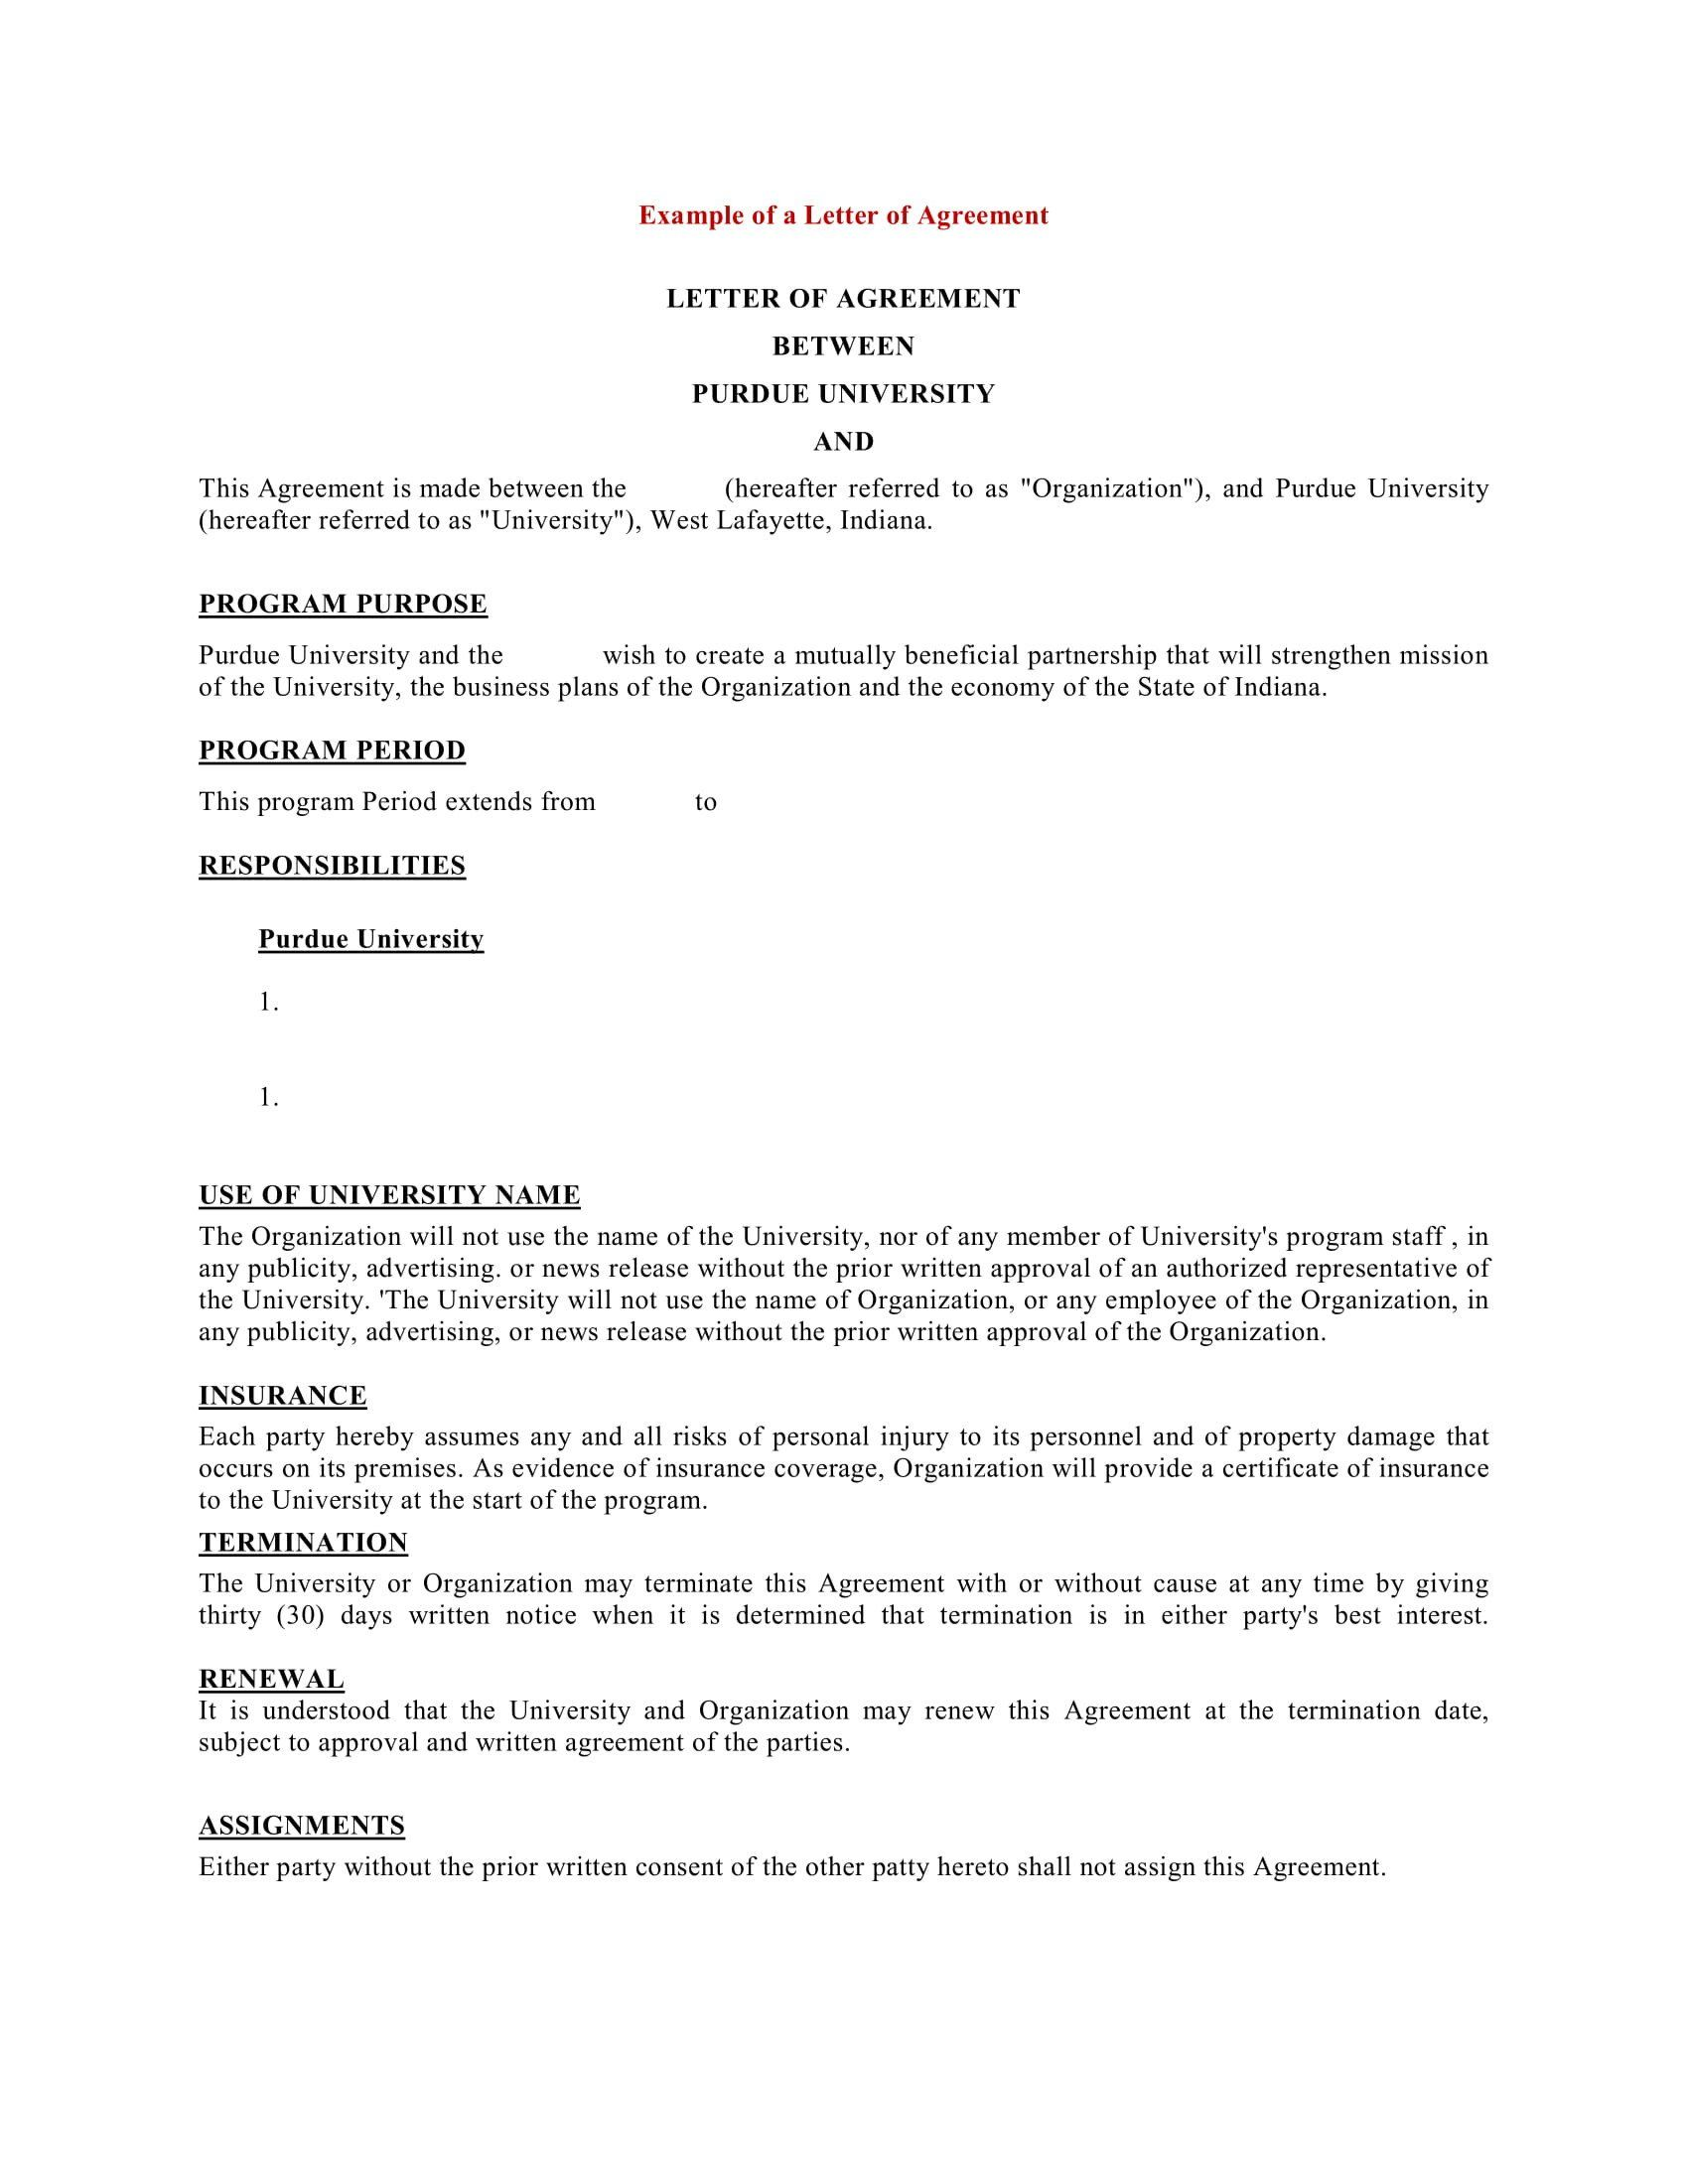 sample of bussiness letters fresh 9 business agreement job resume for freshers pdf best cna career objective cse students